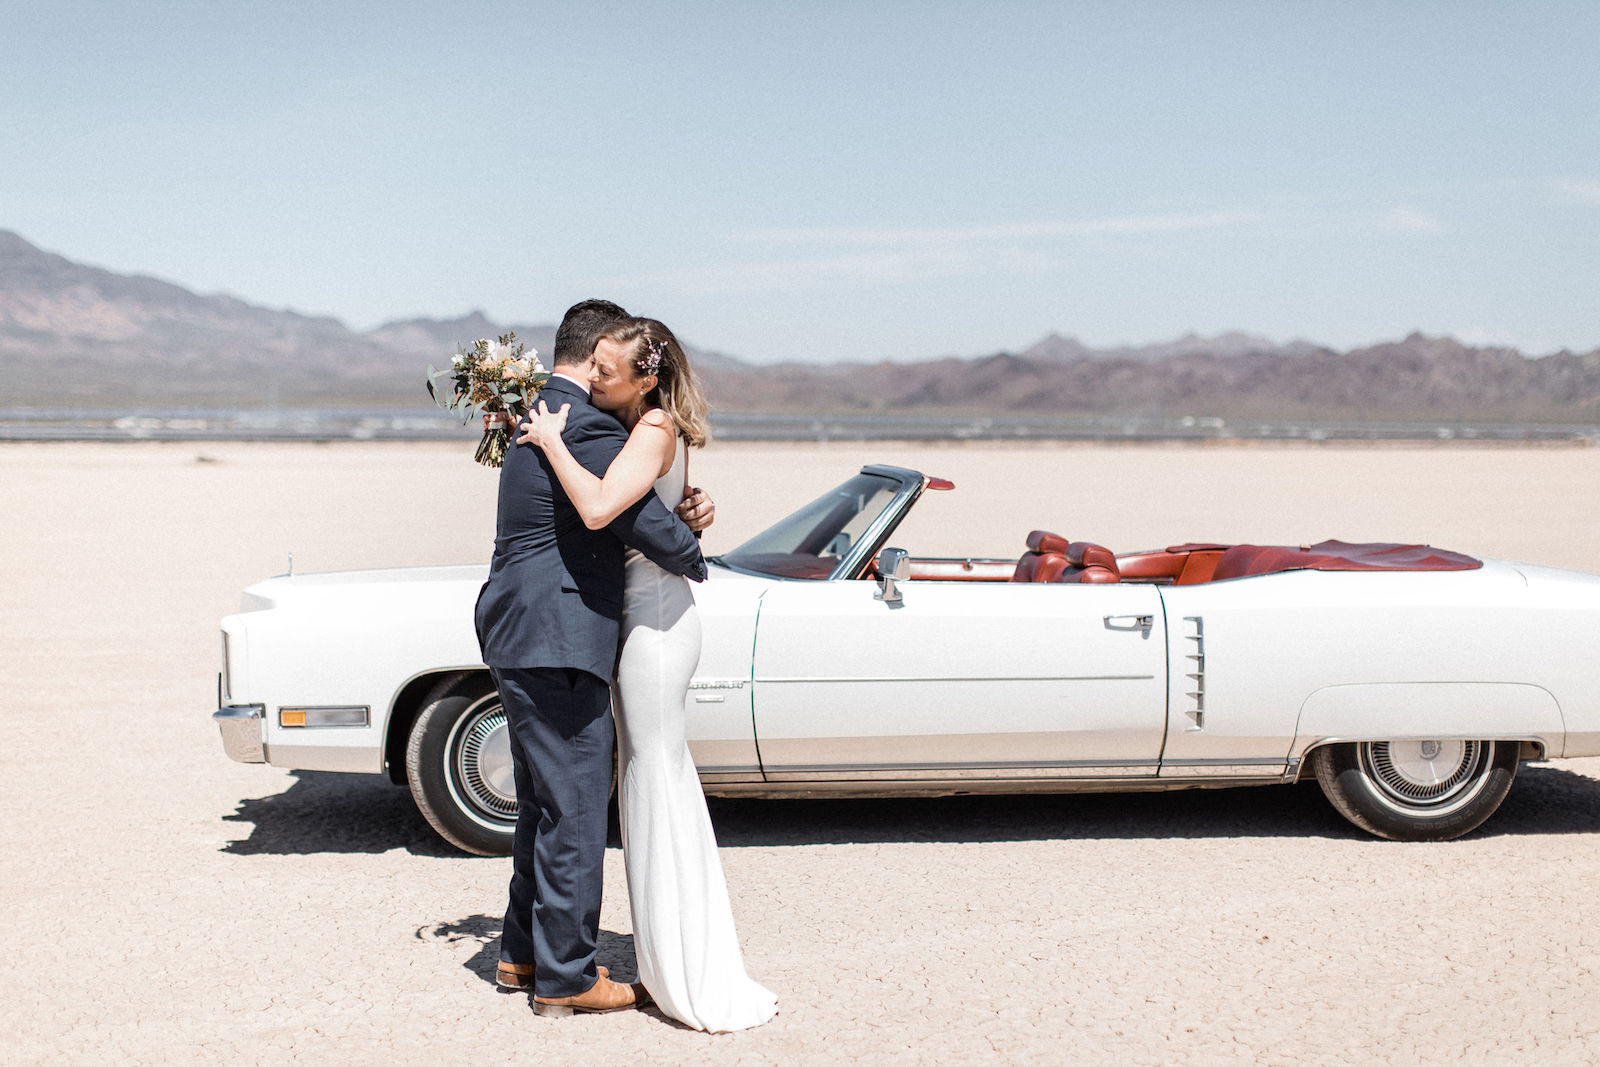 cadillac convertible dry lake bed elopement 00004.jpg